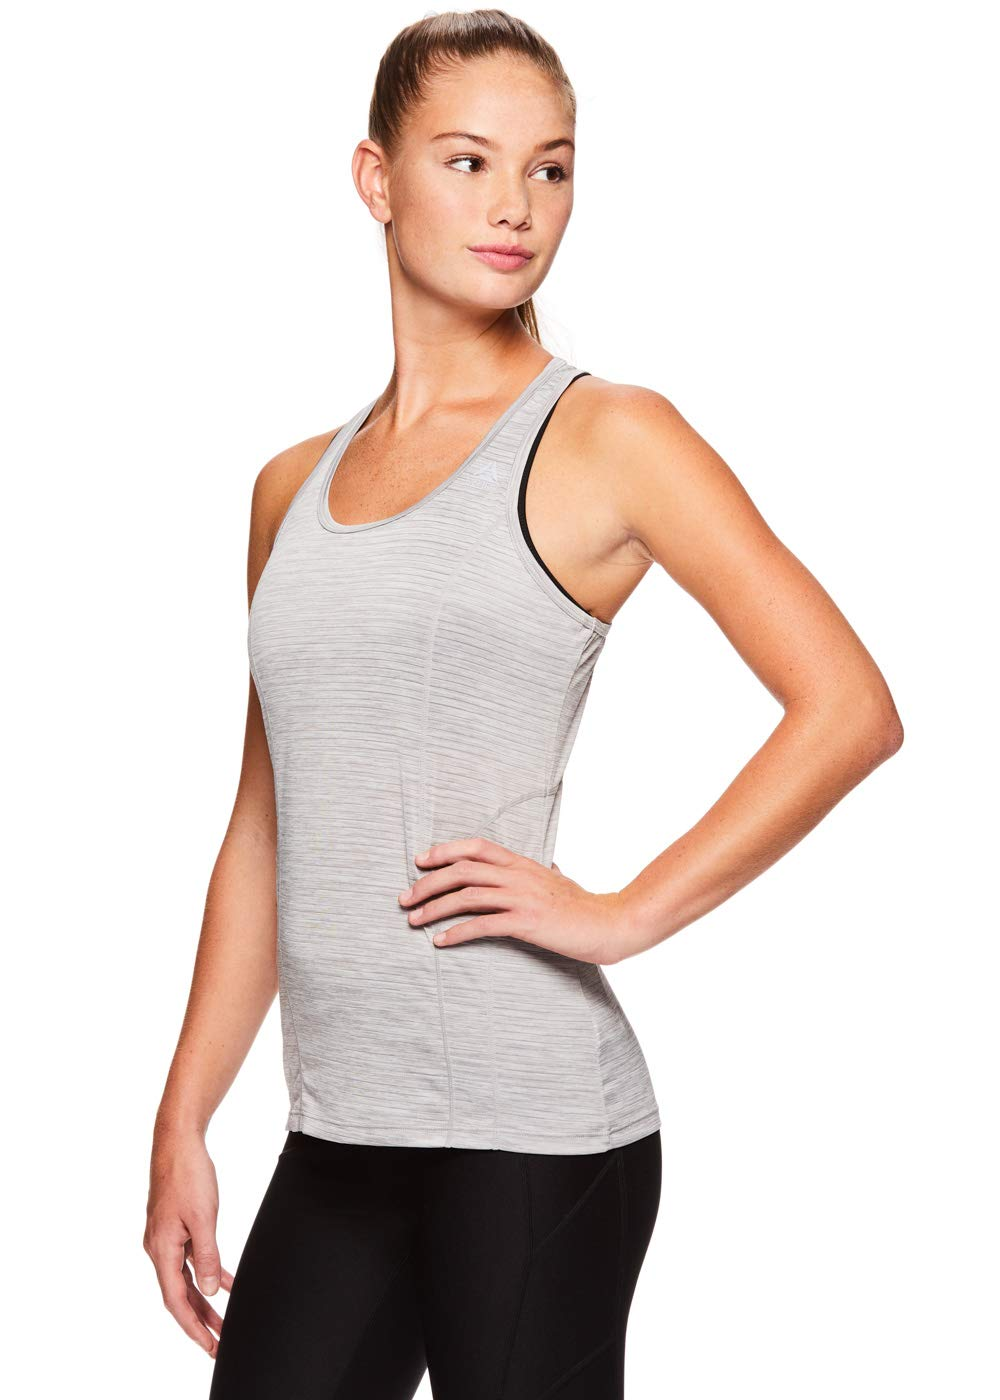 Reebok Women's Dynamic Fitted Performance Racerback Tank Top - Silver Sconce Heather, Small by Reebok (Image #2)